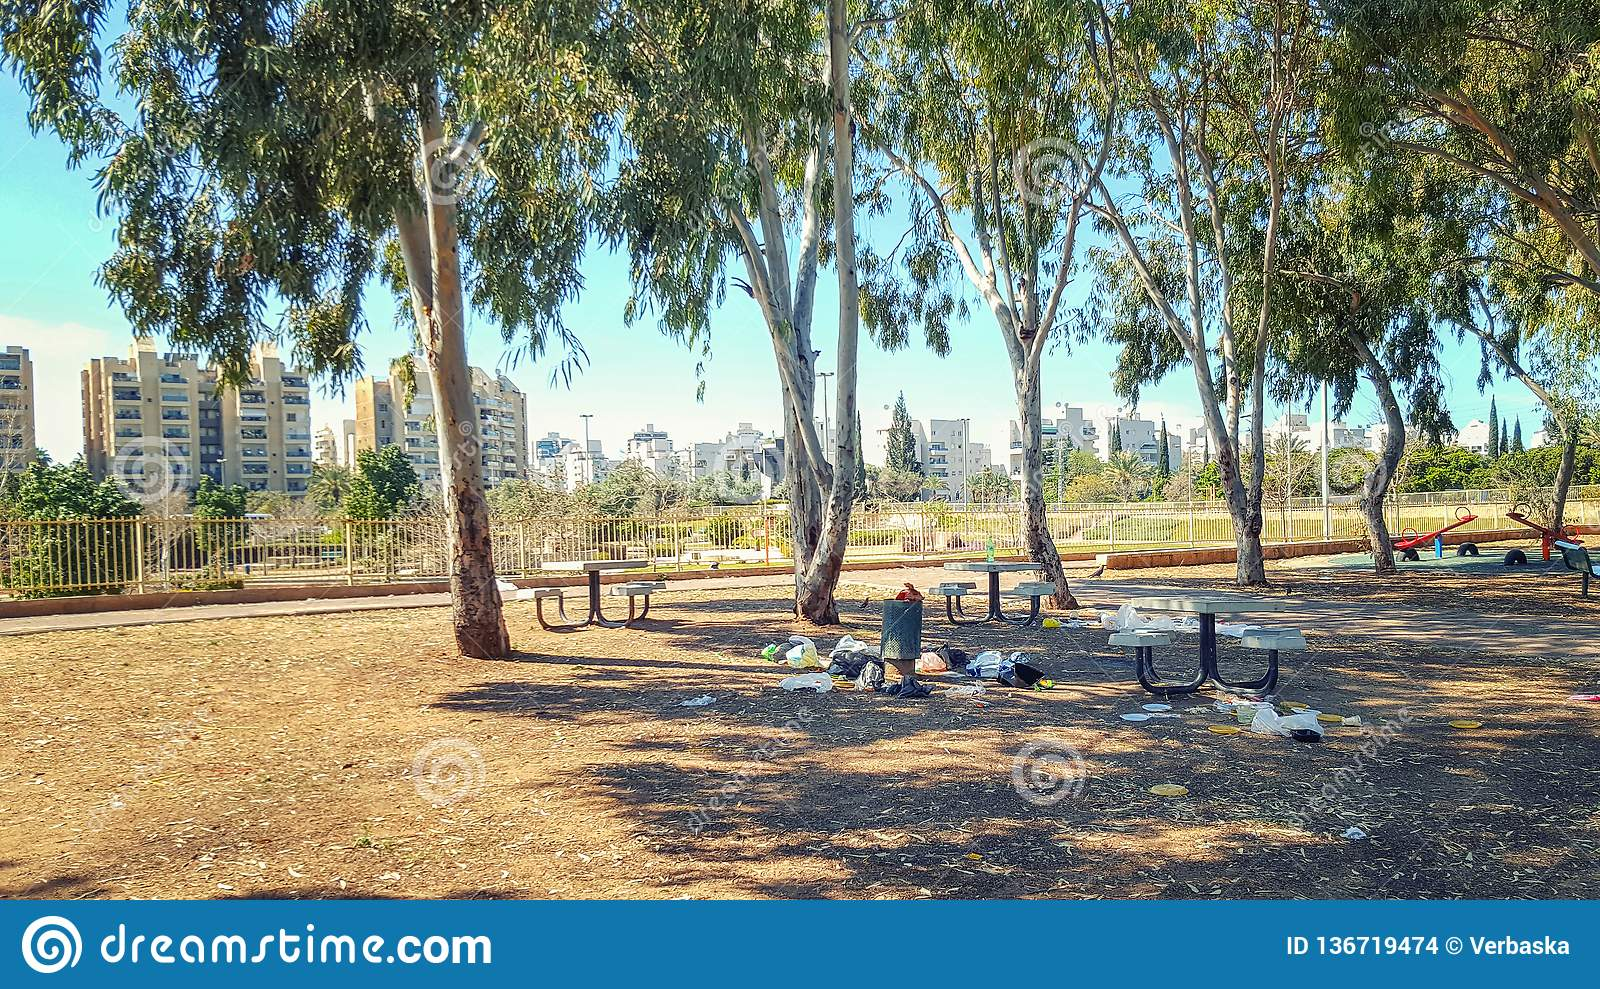 A small town park provides neighborhood dwellers with picnic facilities